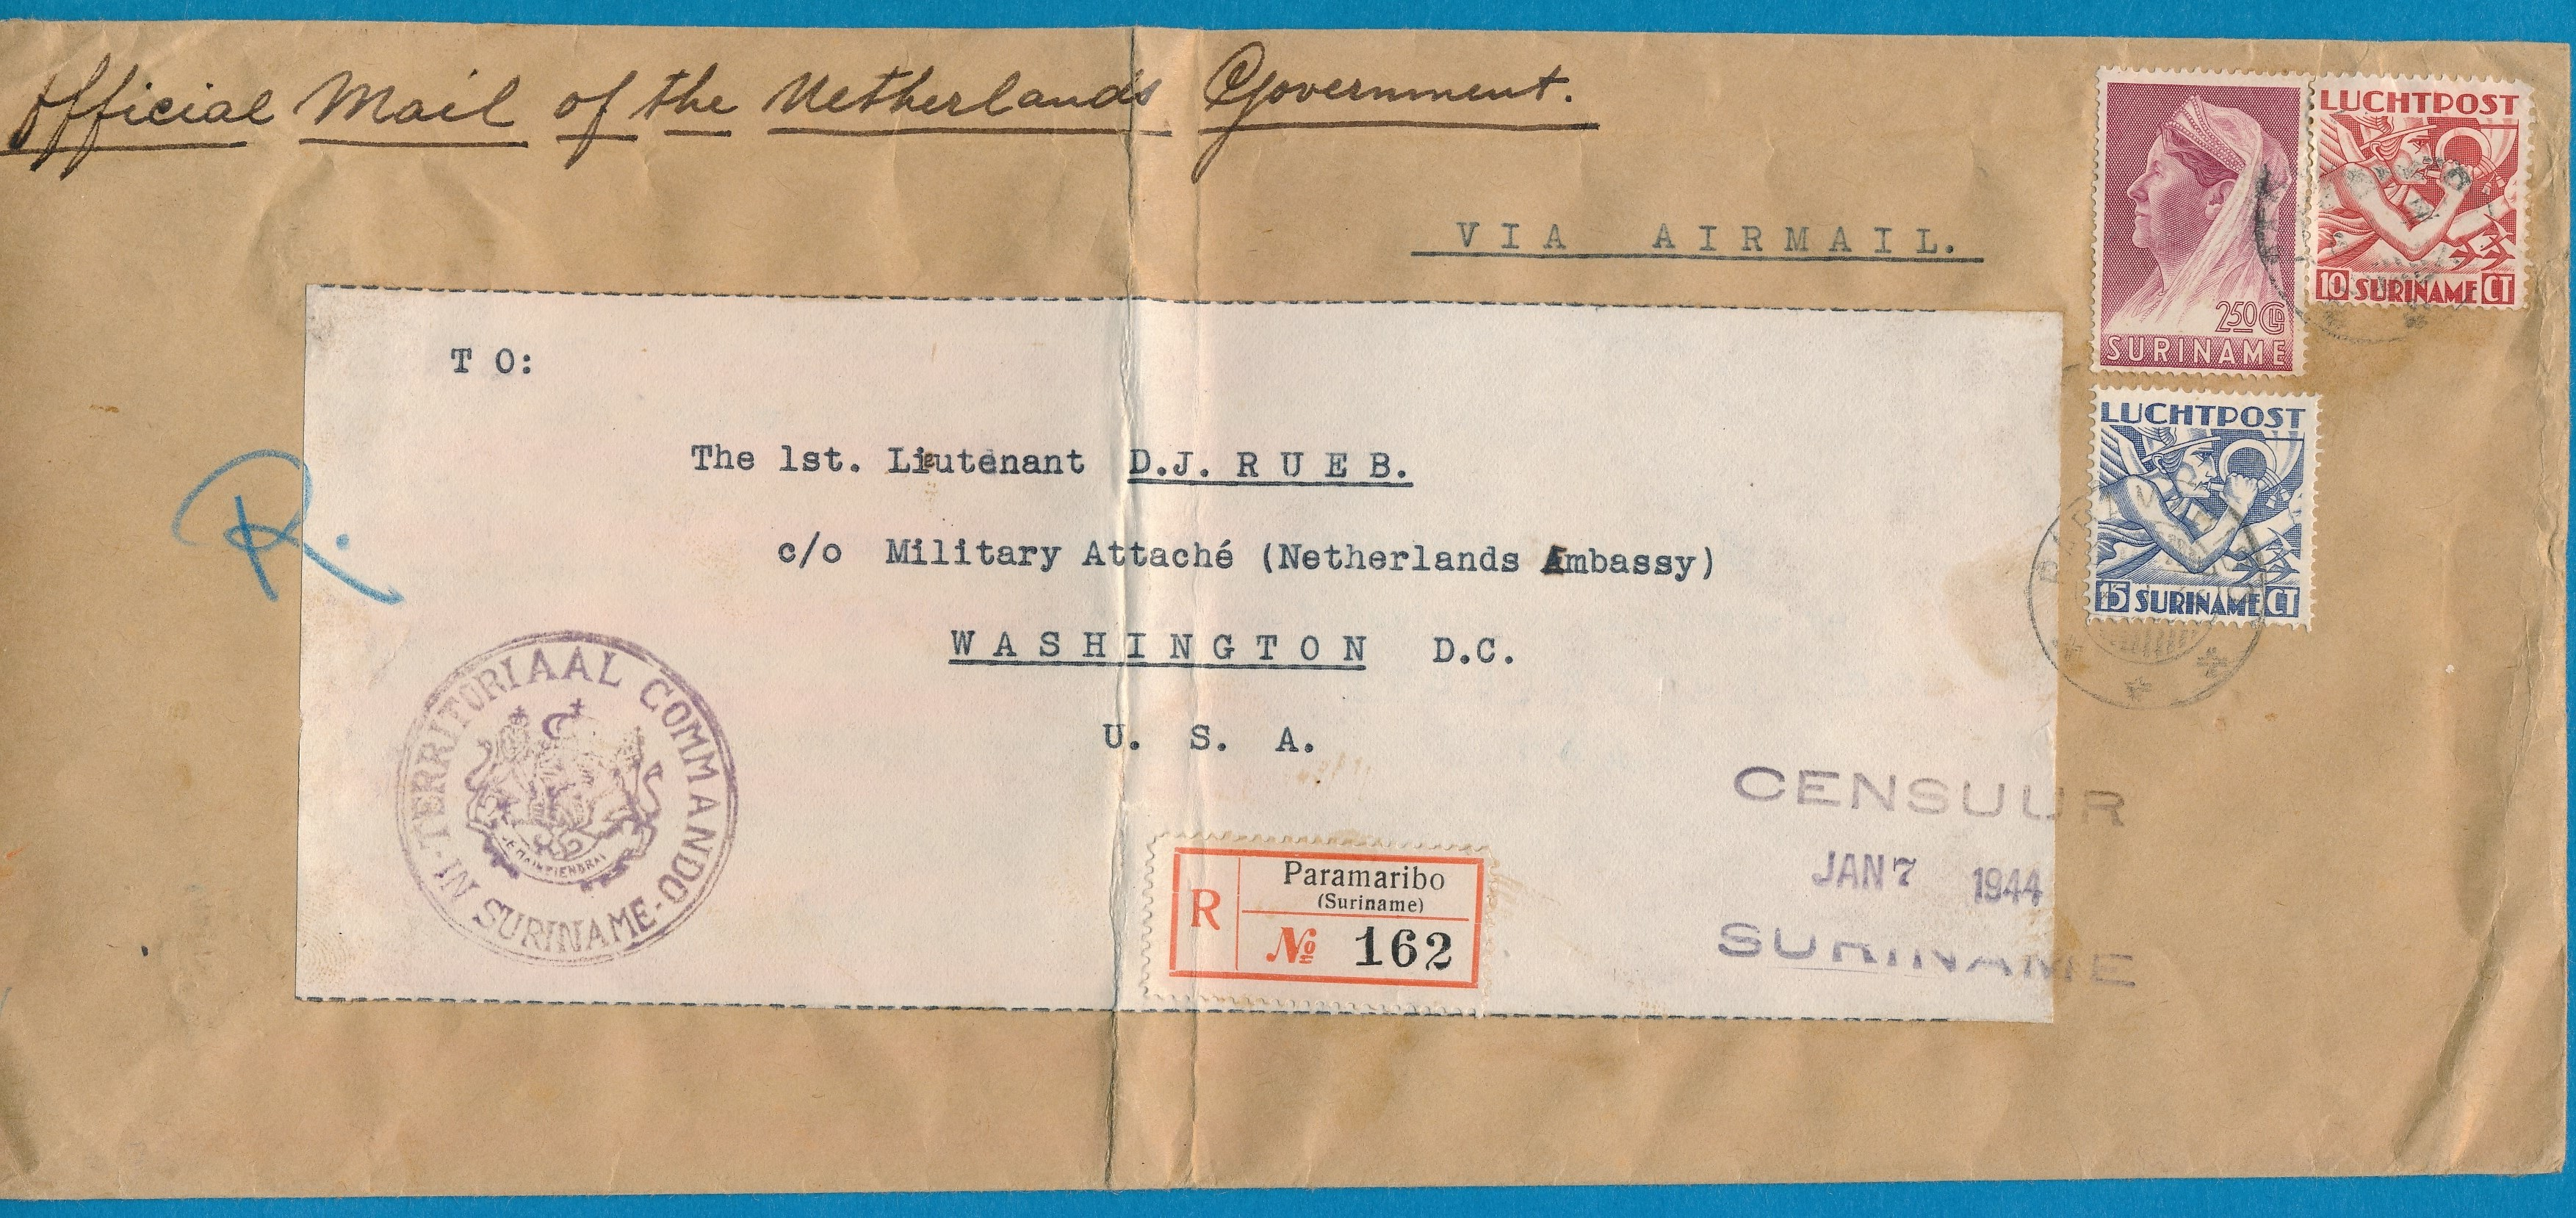 SURINAME R censuur brief 1944 Paramaribo naar USA SUR126